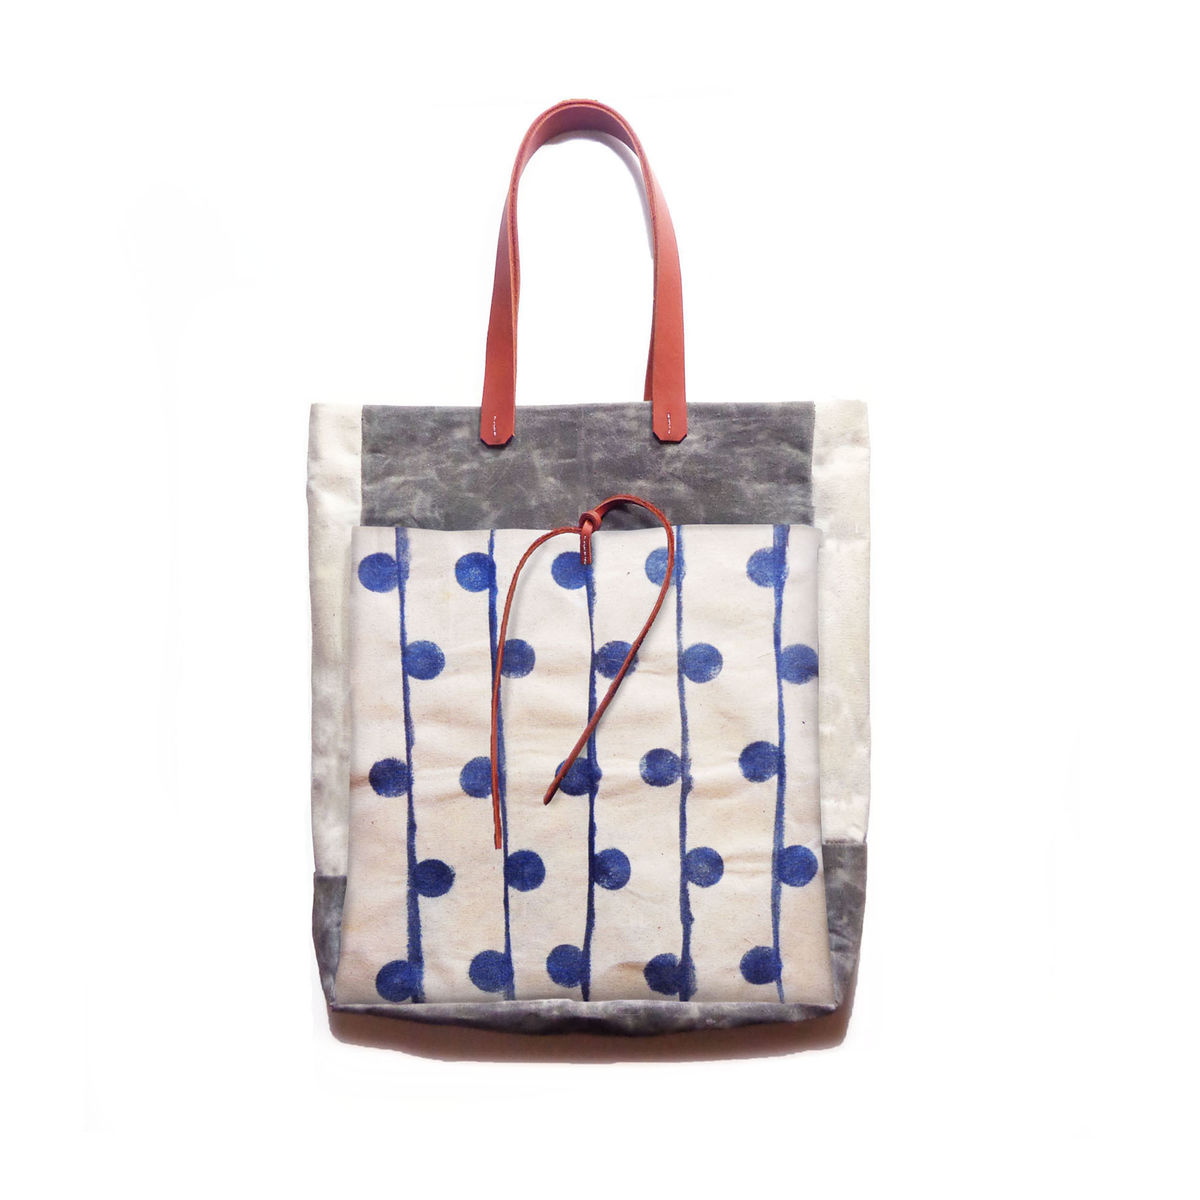 Market Tote w/ Leather Handles - Indigo Dew - product images  of